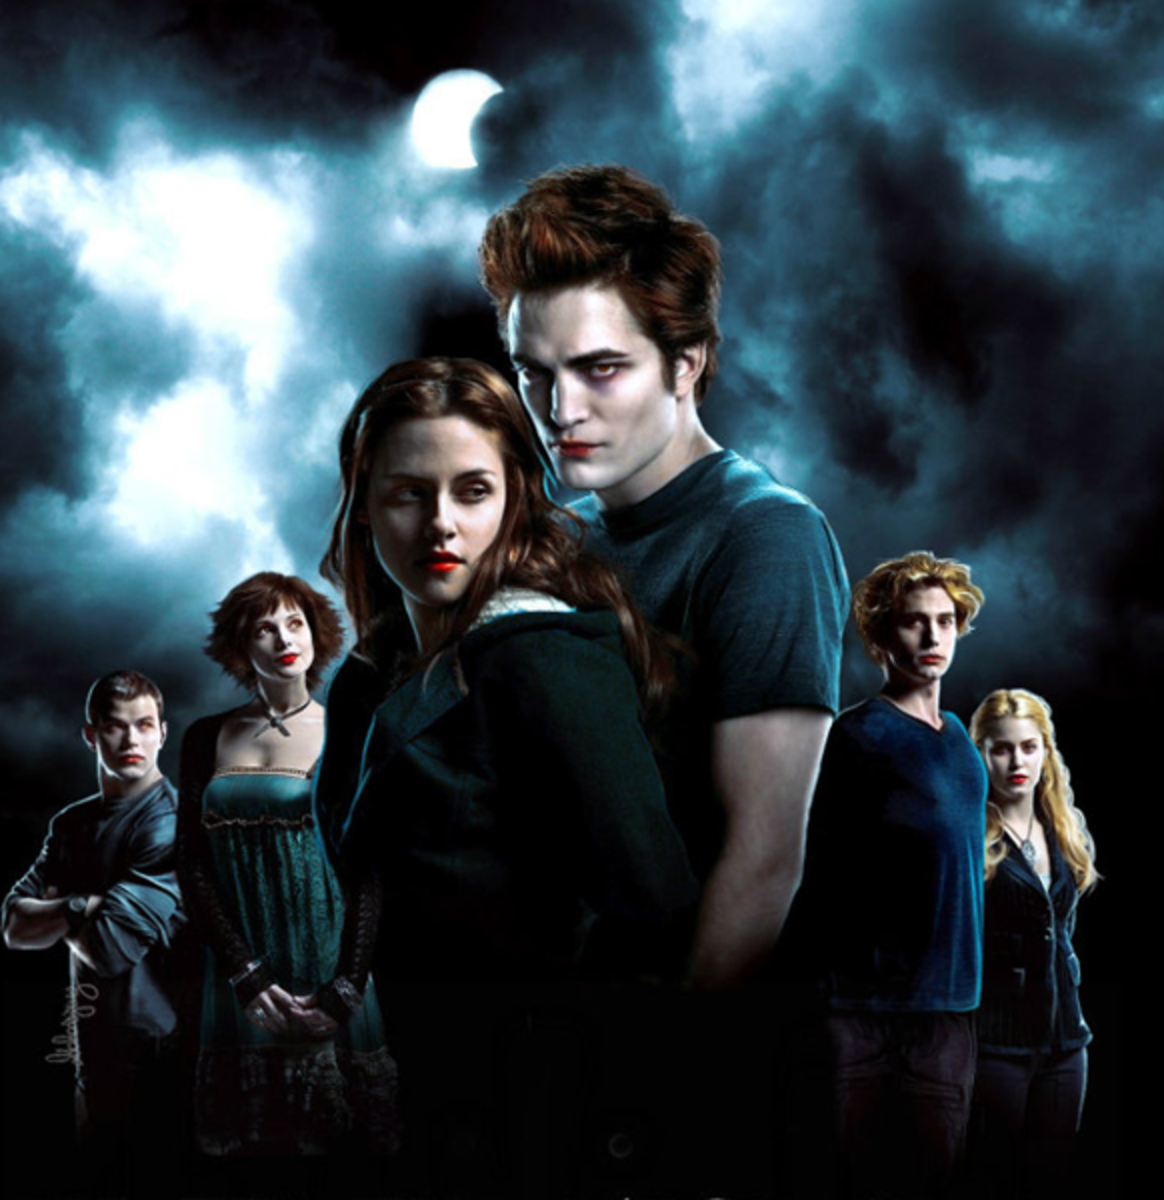 'Twilight' Cast: Where Are They Now?